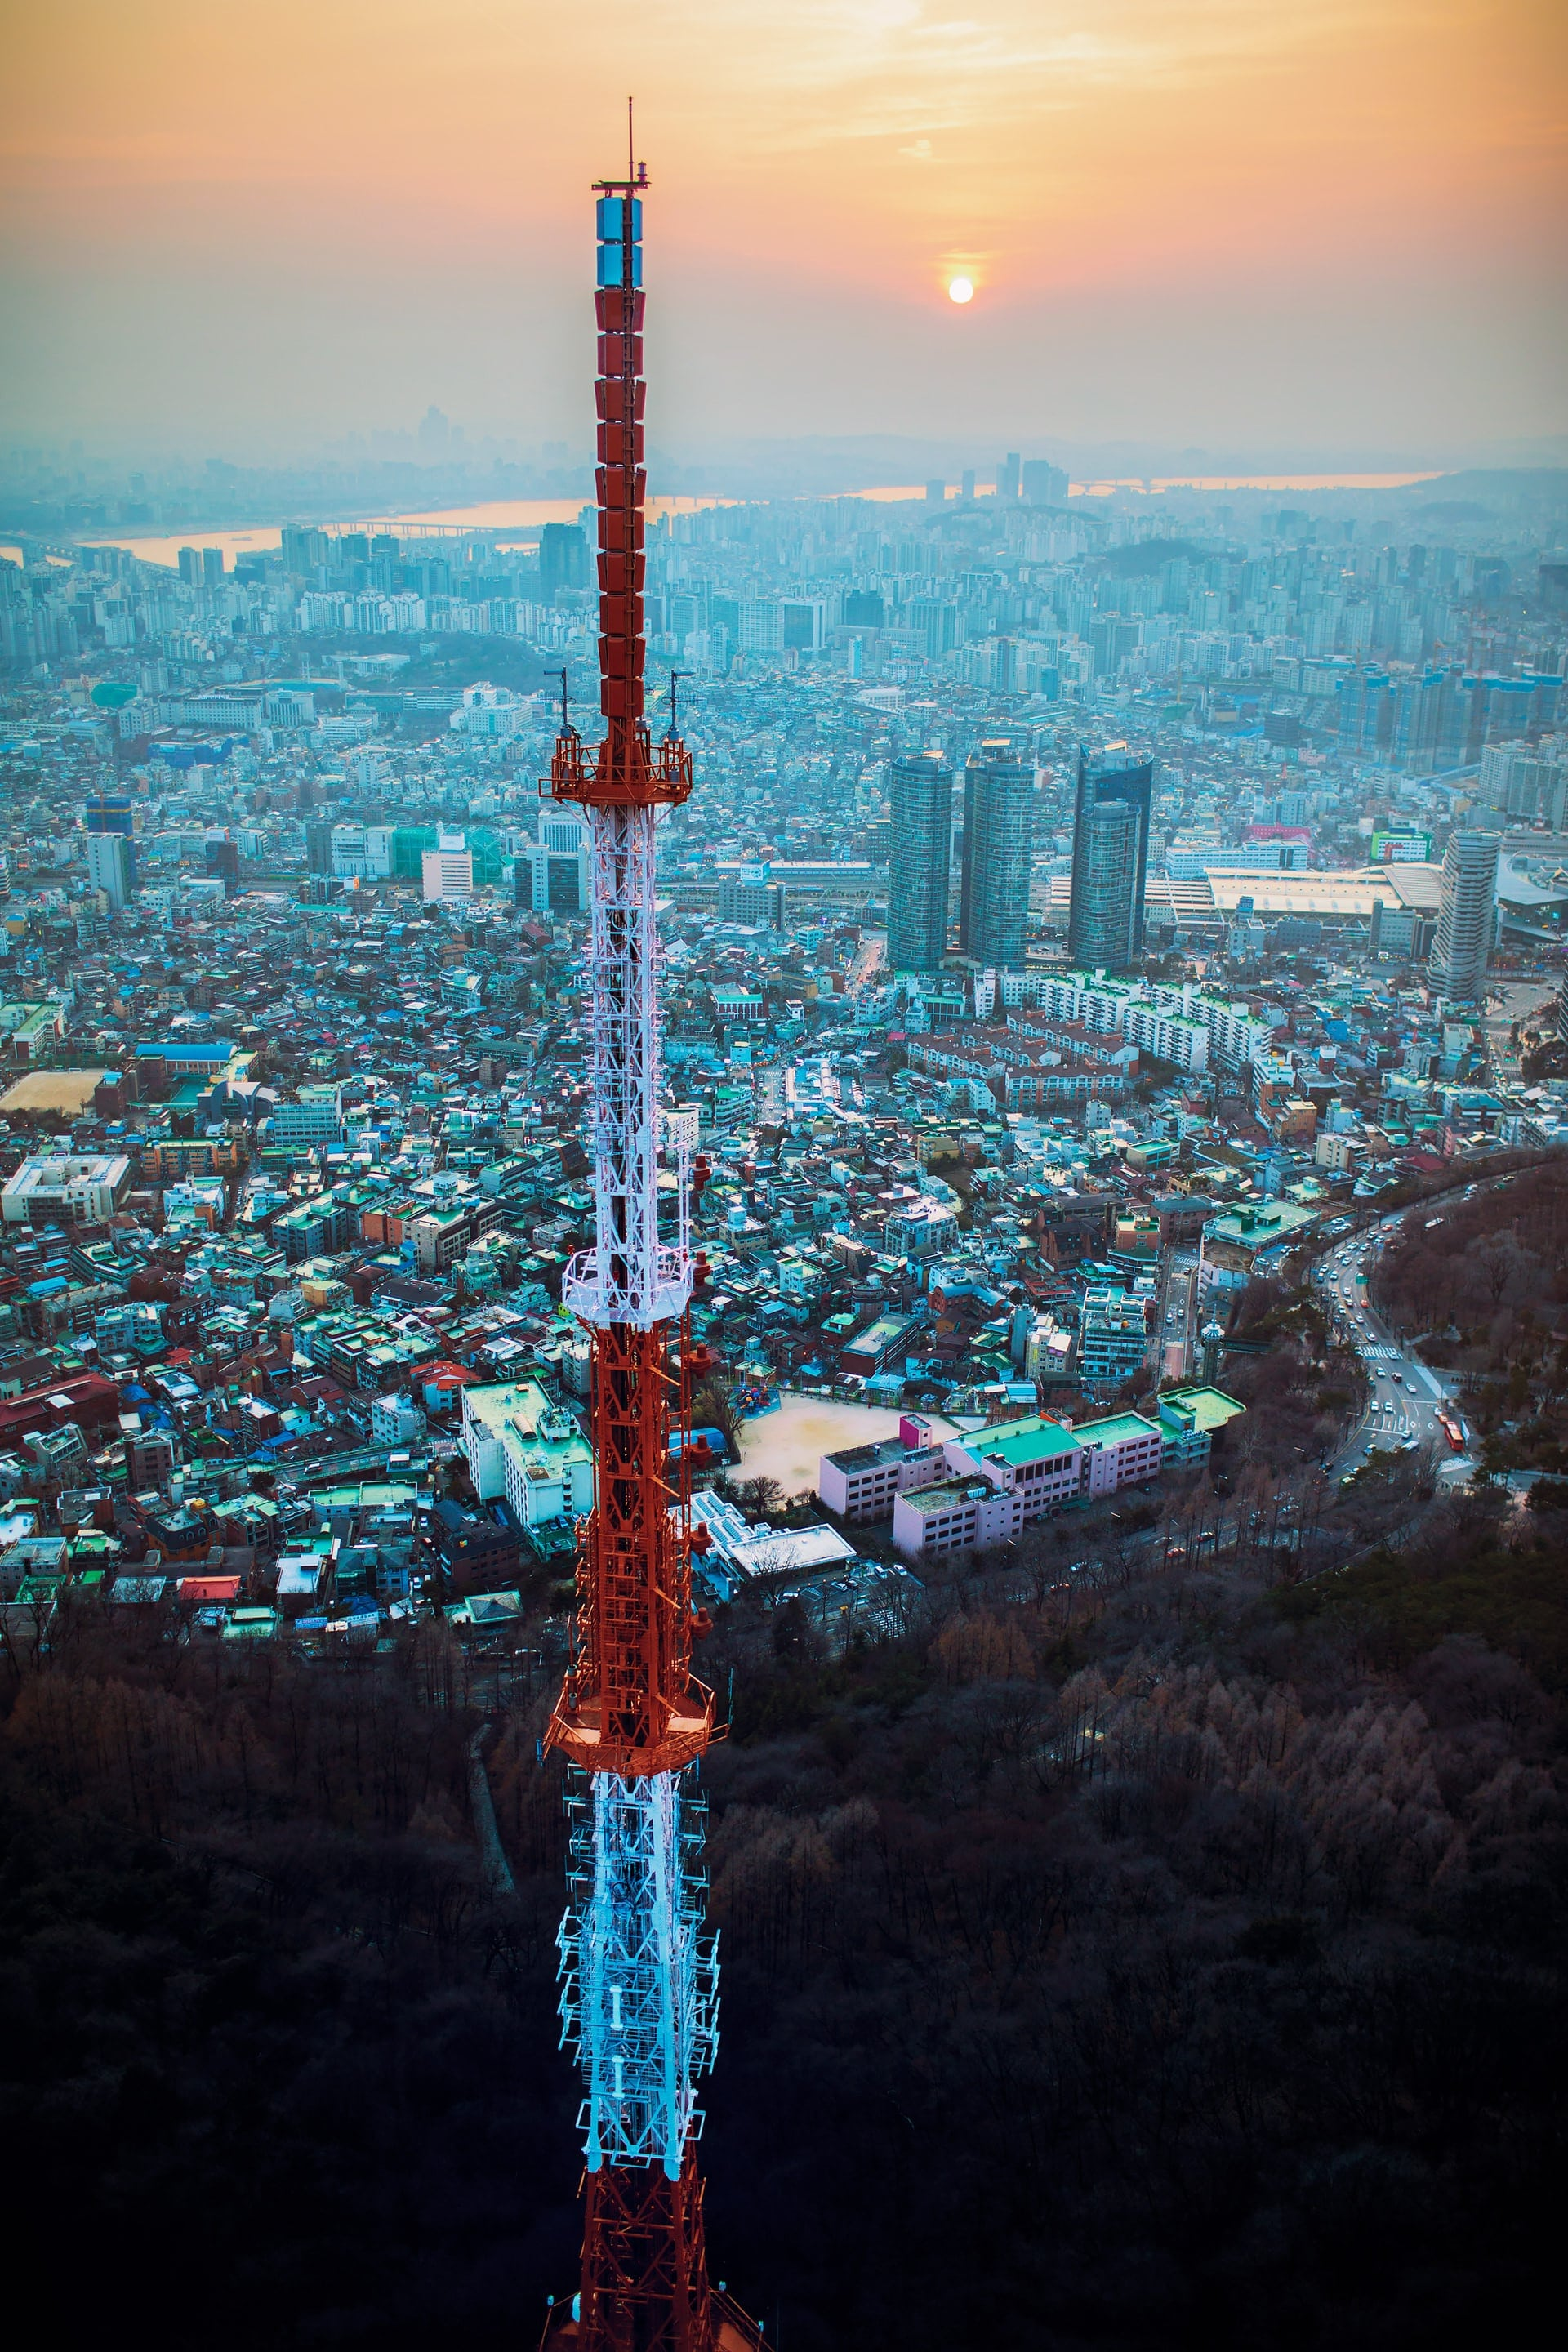 Sunset view from Seoul Tower